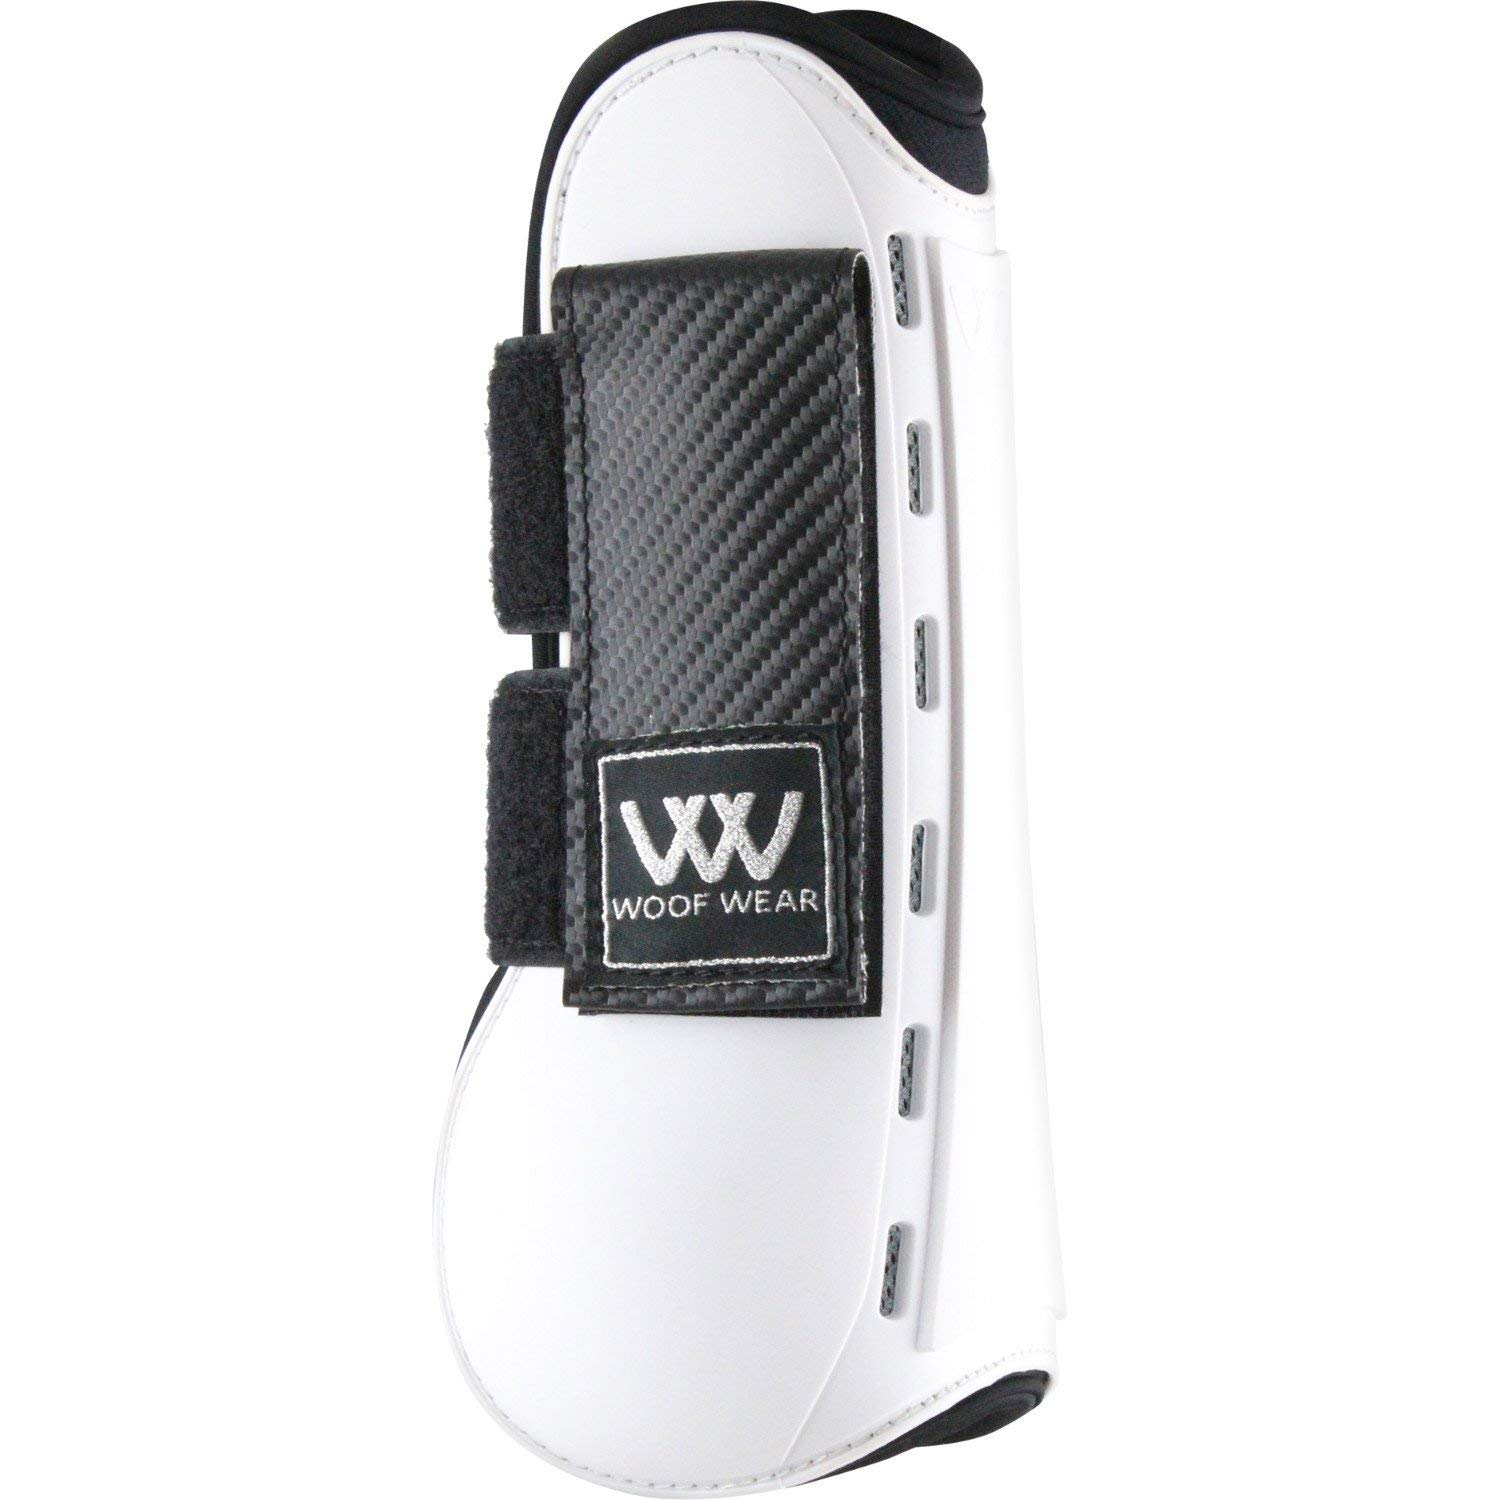 Woof Wear Smart Tendon Boots Only Just Arrived!